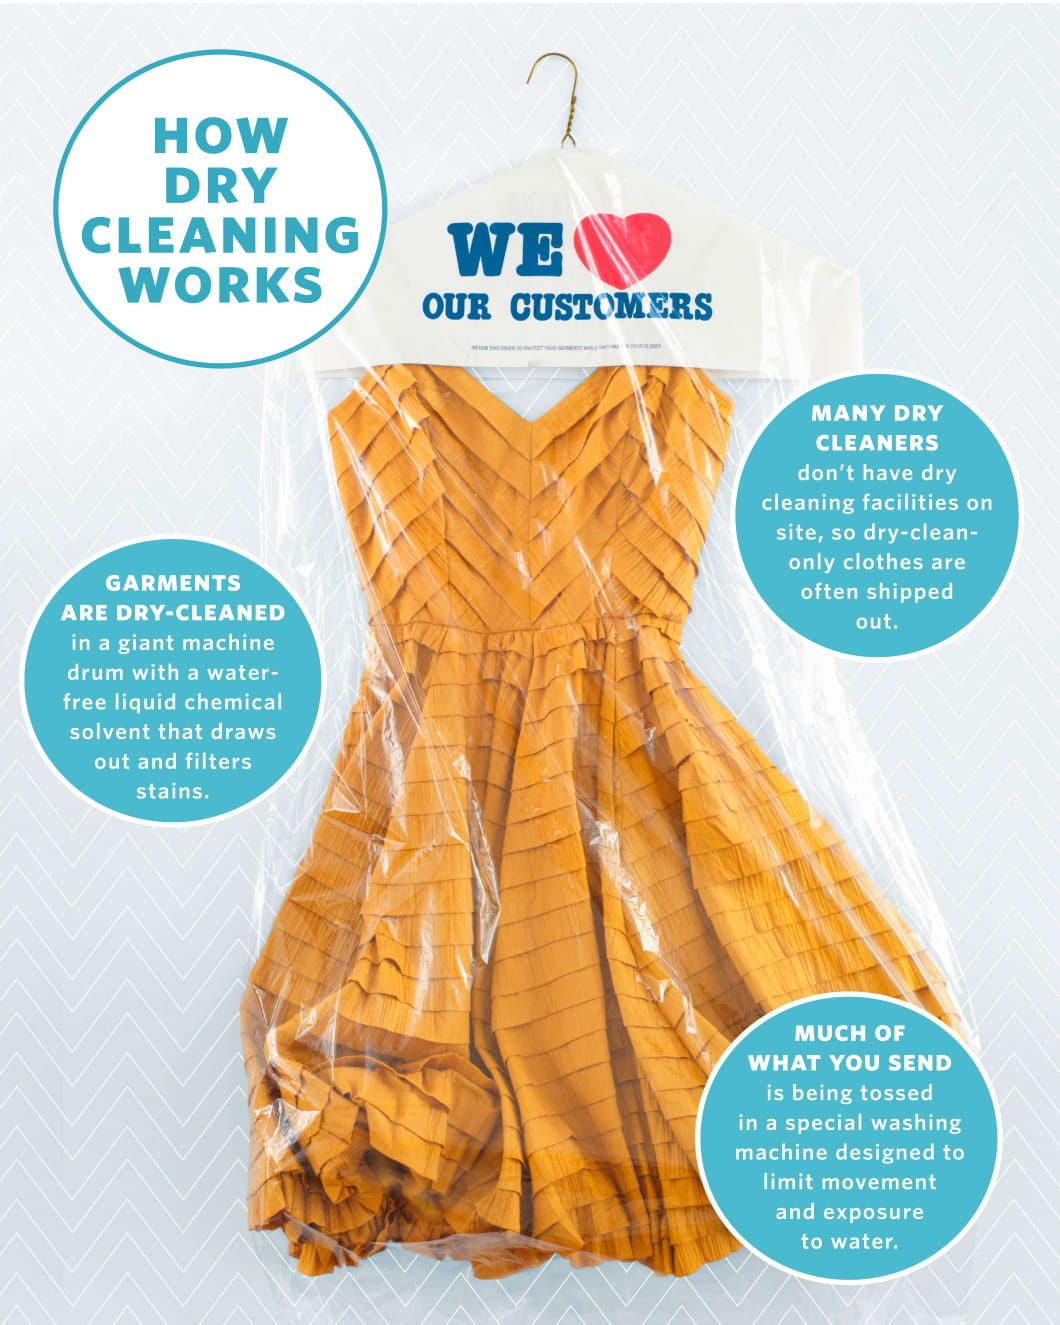 Clean Iq We Put The Dry Cleaning Process Through Through The